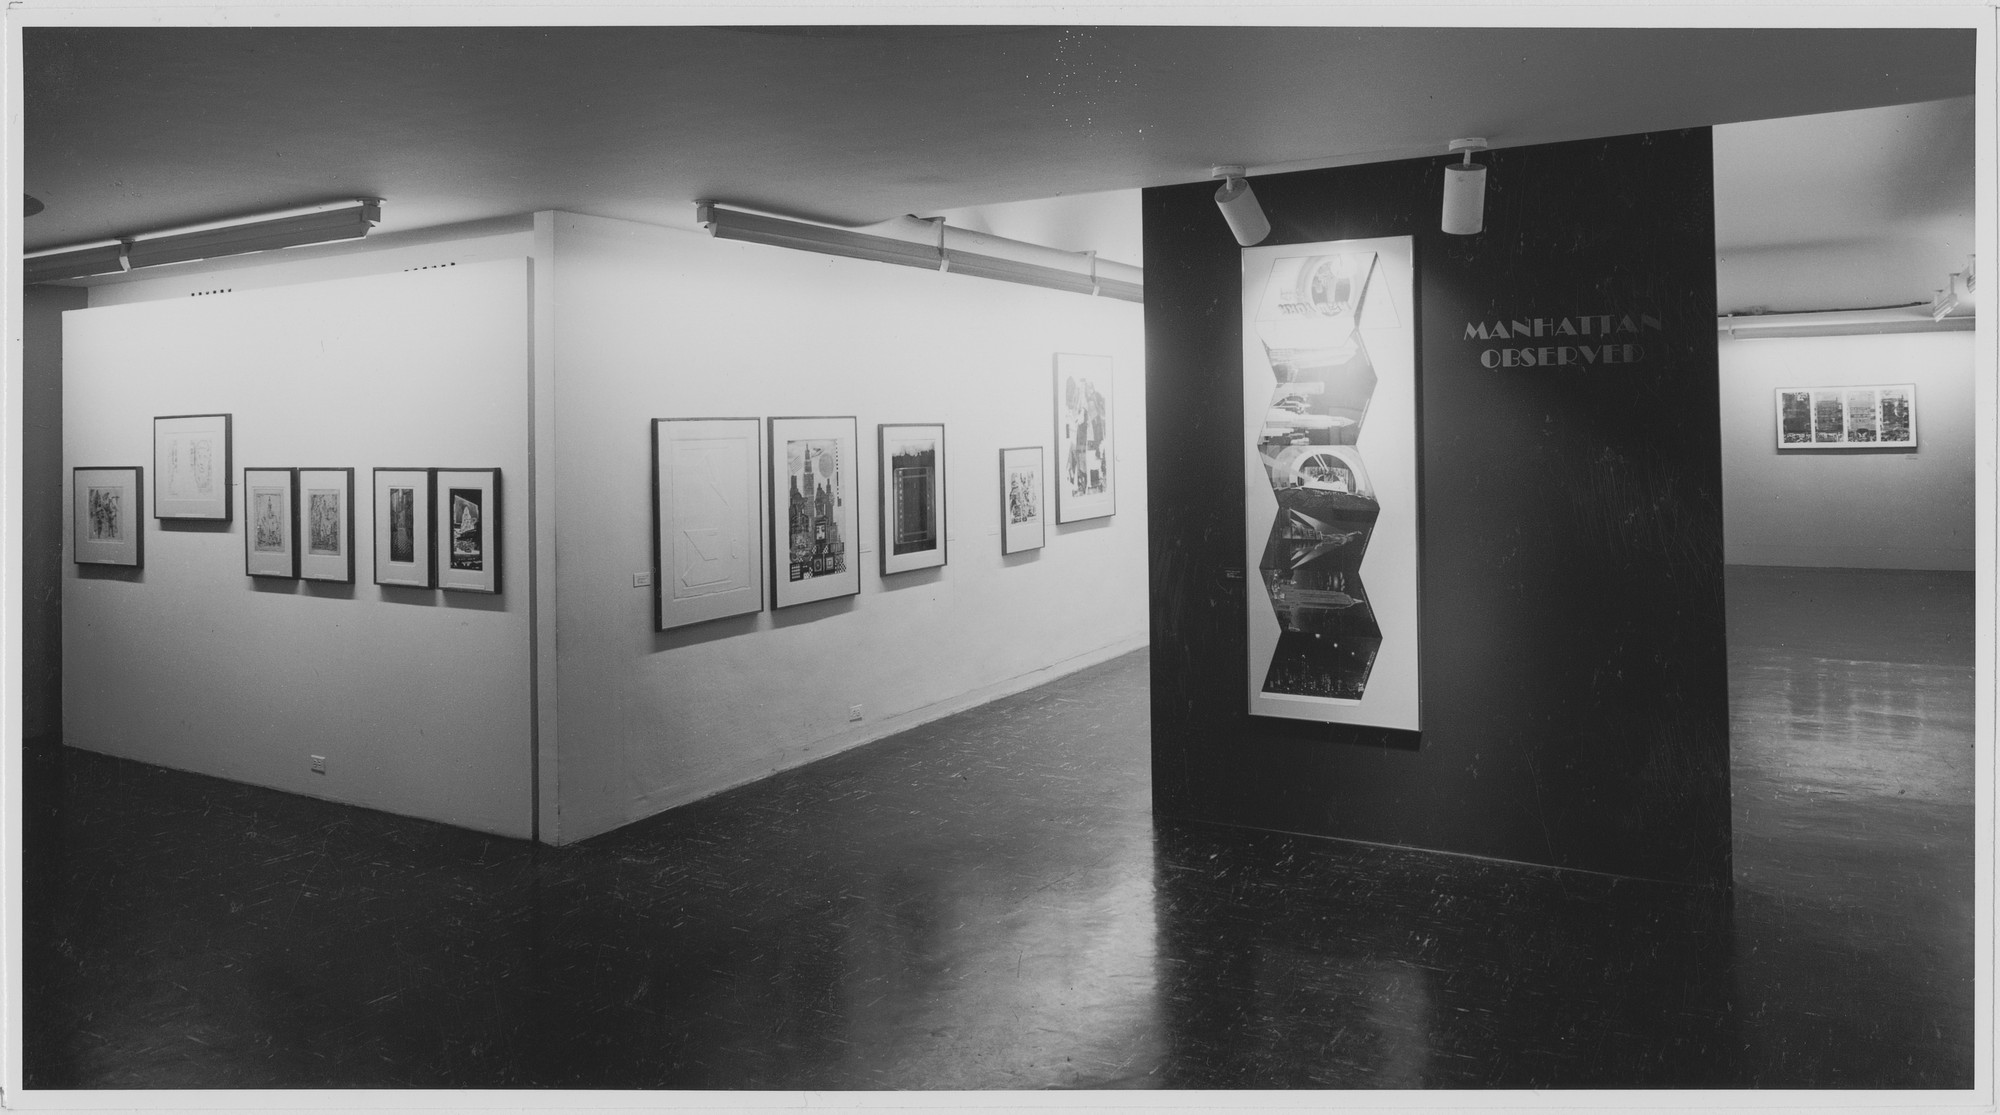 "Installation view of the exhibition, ""Manhattan Observed."" March 22, 1968–July 1, 1968. Photographic Archive. The Museum of Modern Art Archives, New York. IN854.1. Photograph by James Mathews."